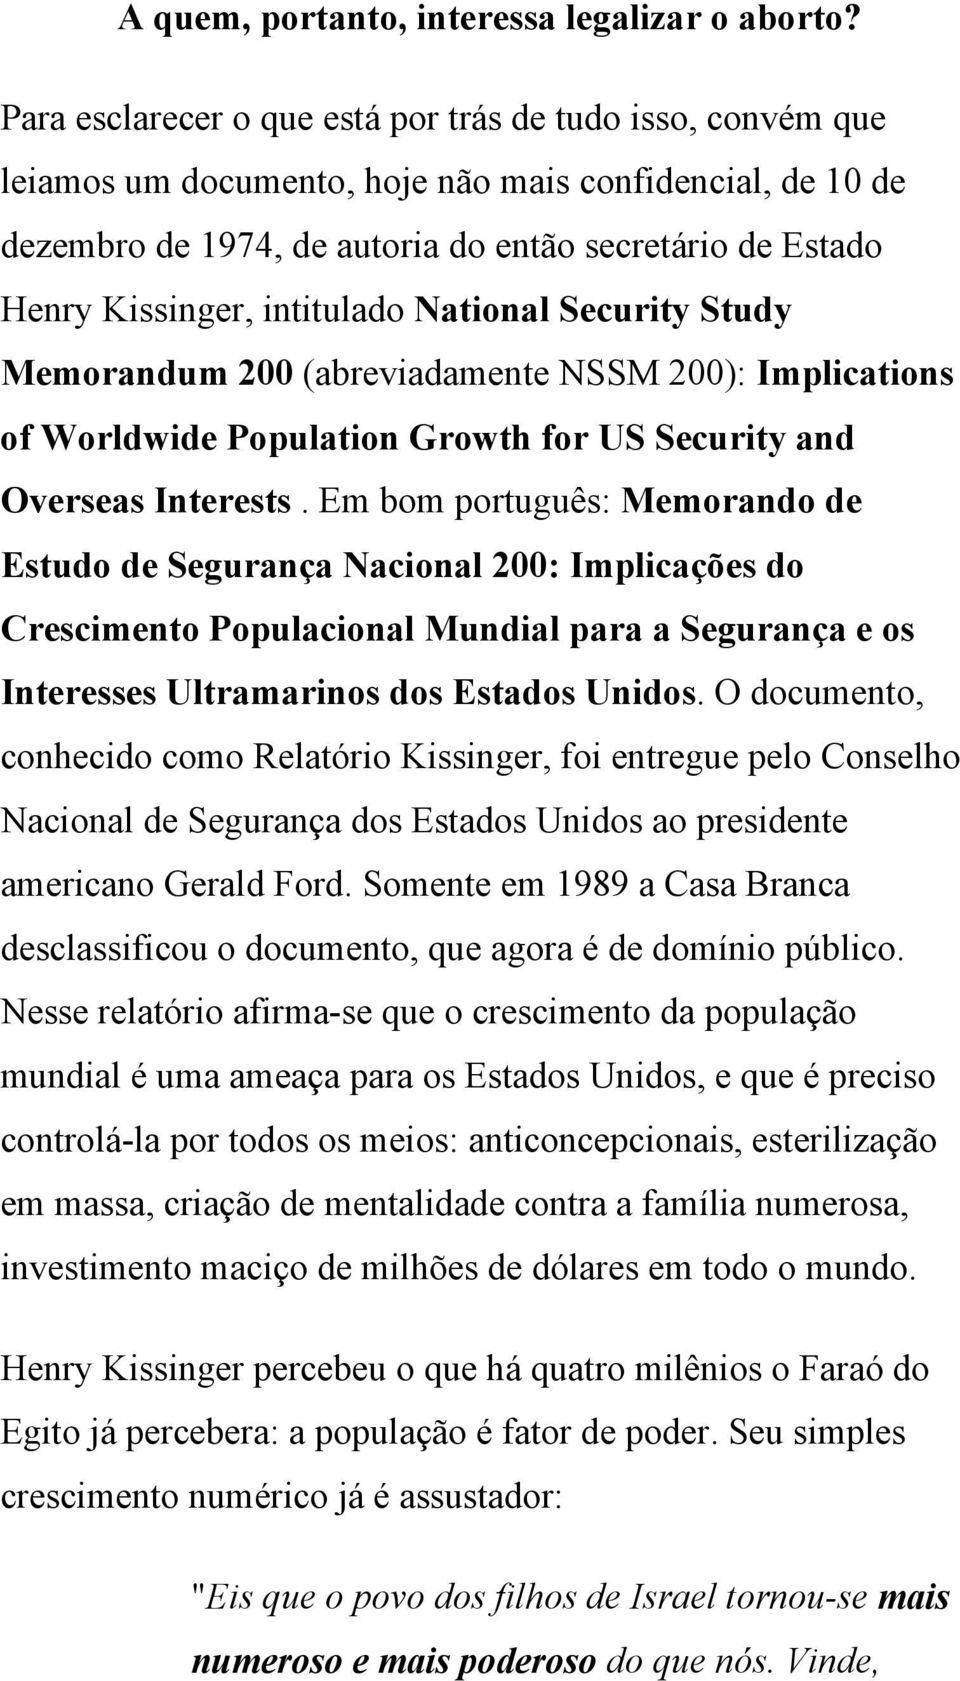 intitulado National Security Study Memorandum 200 (abreviadamente NSSM 200): Implications of Worldwide Population Growth for US Security and Overseas Interests.